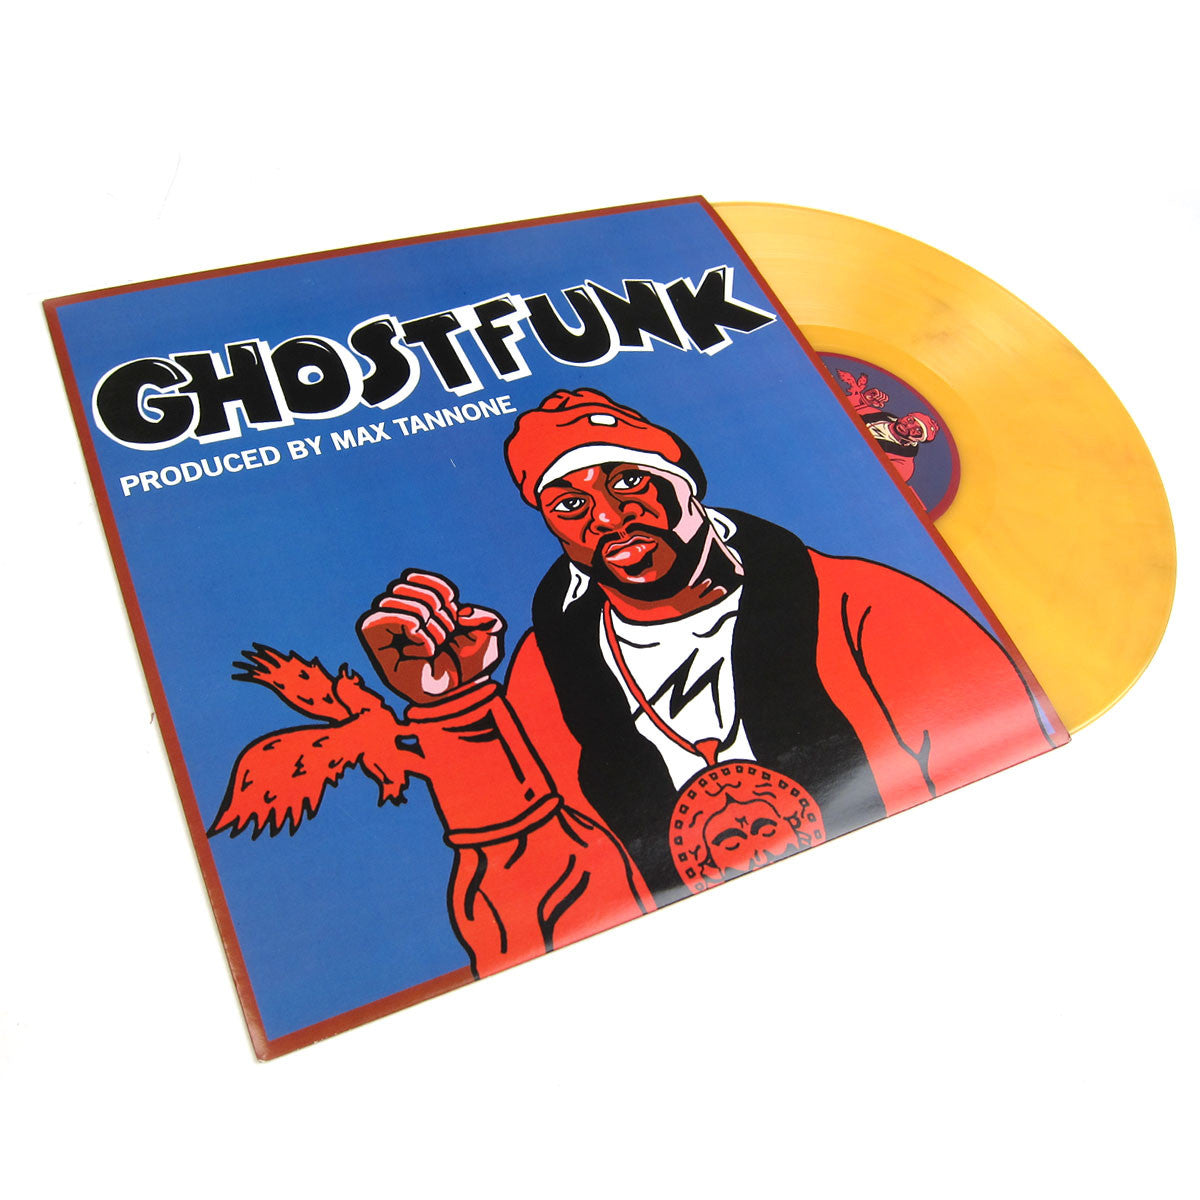 Ghostface Killah: Ghostfunk (Max Tannone) Vinyl LP